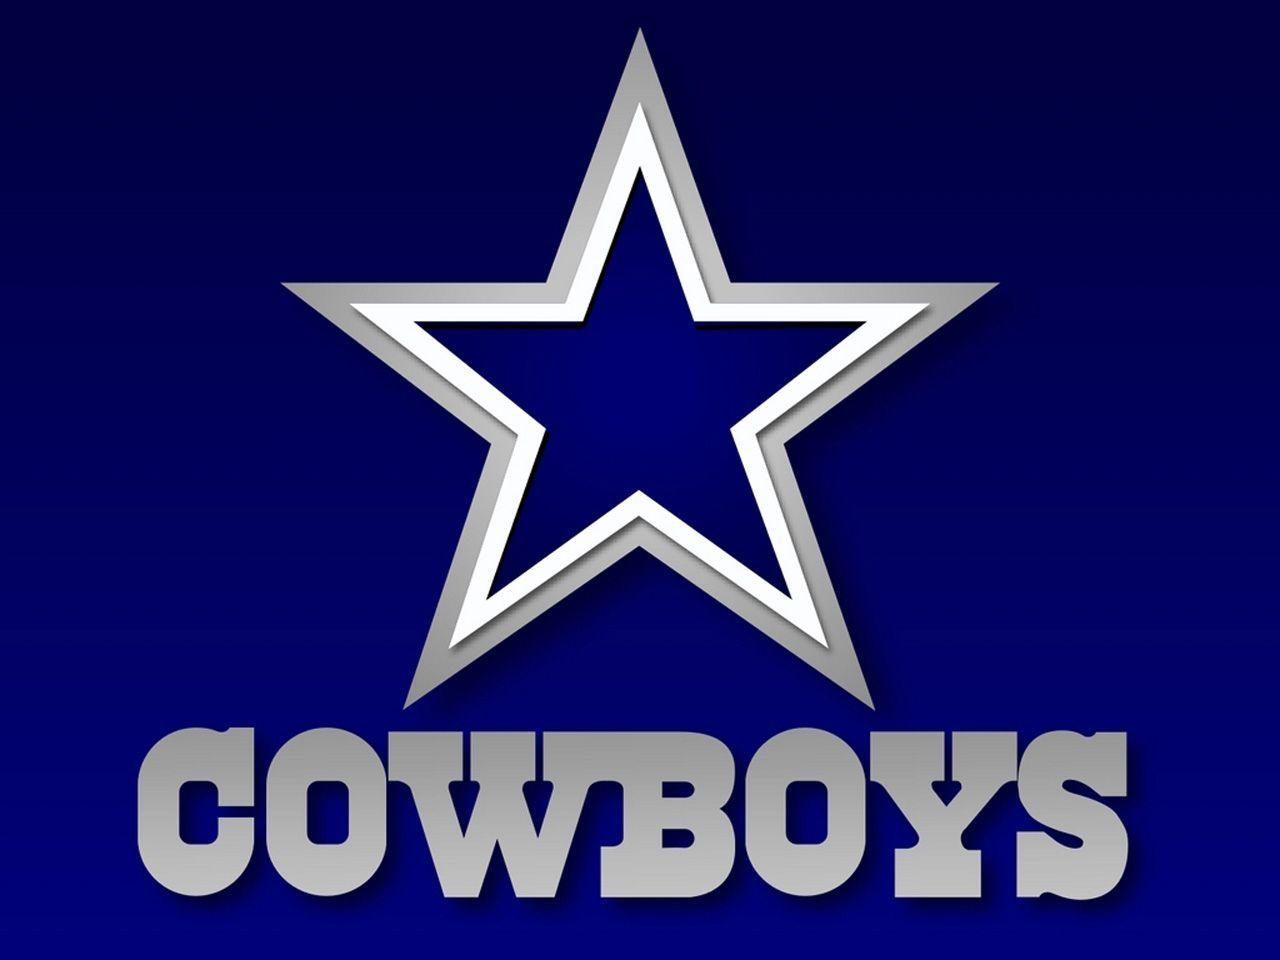 Dallas cowboys image wallpapers wallpaper cave dallas cowboys wallpapers dallas cowboys background page 5 download voltagebd Images